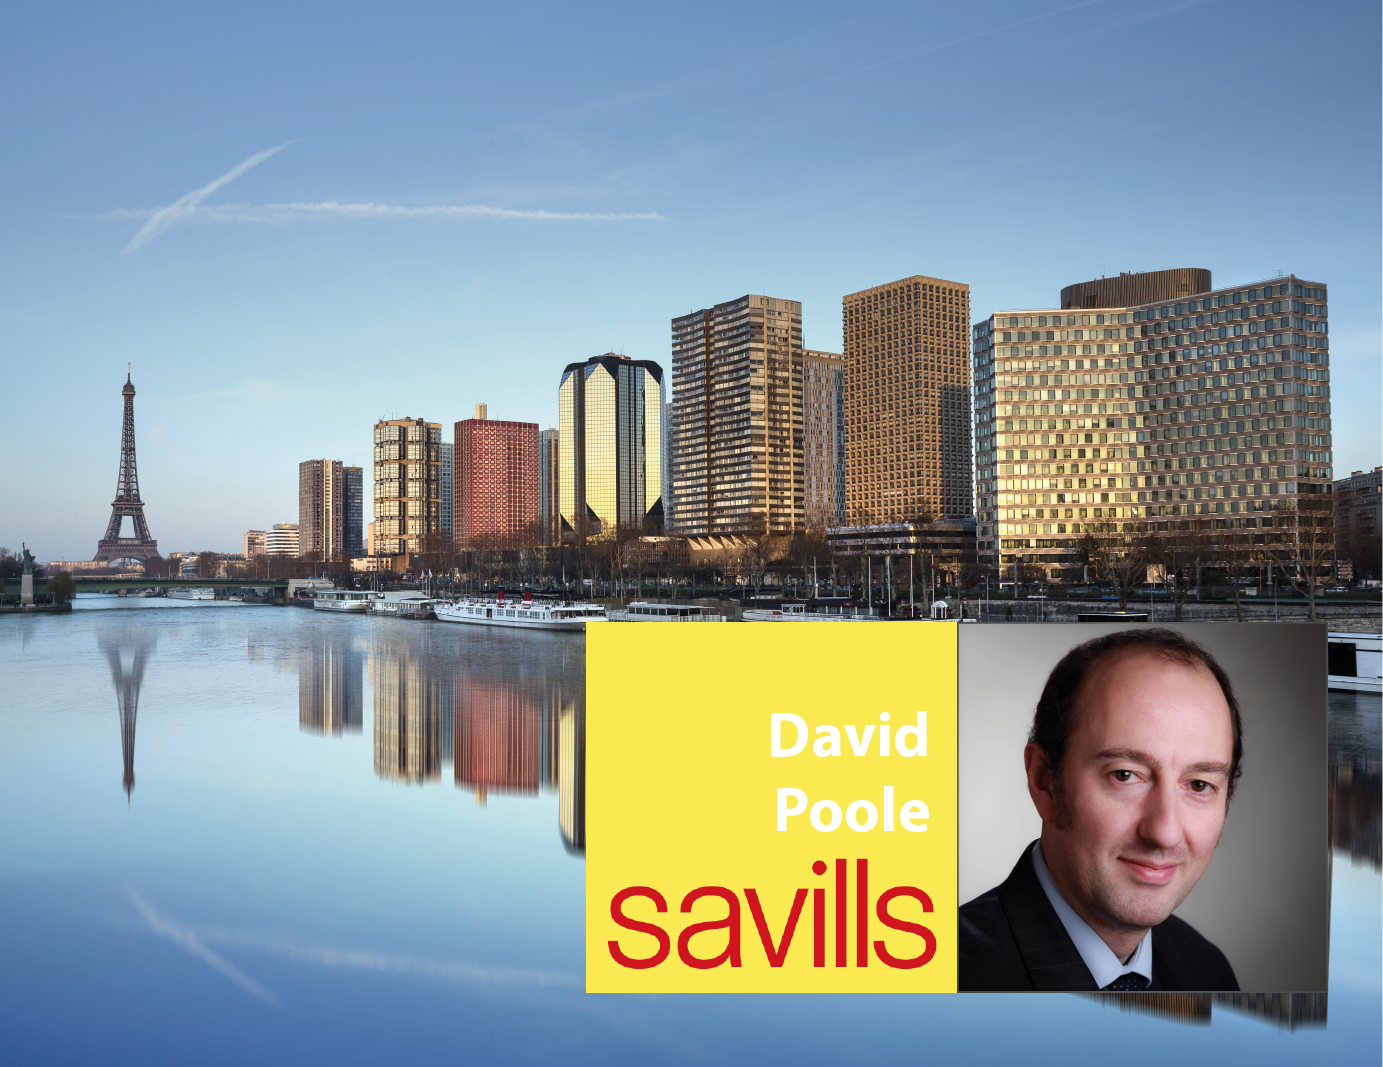 Savills France Geolocaux David Poole Savills Valuation SAS